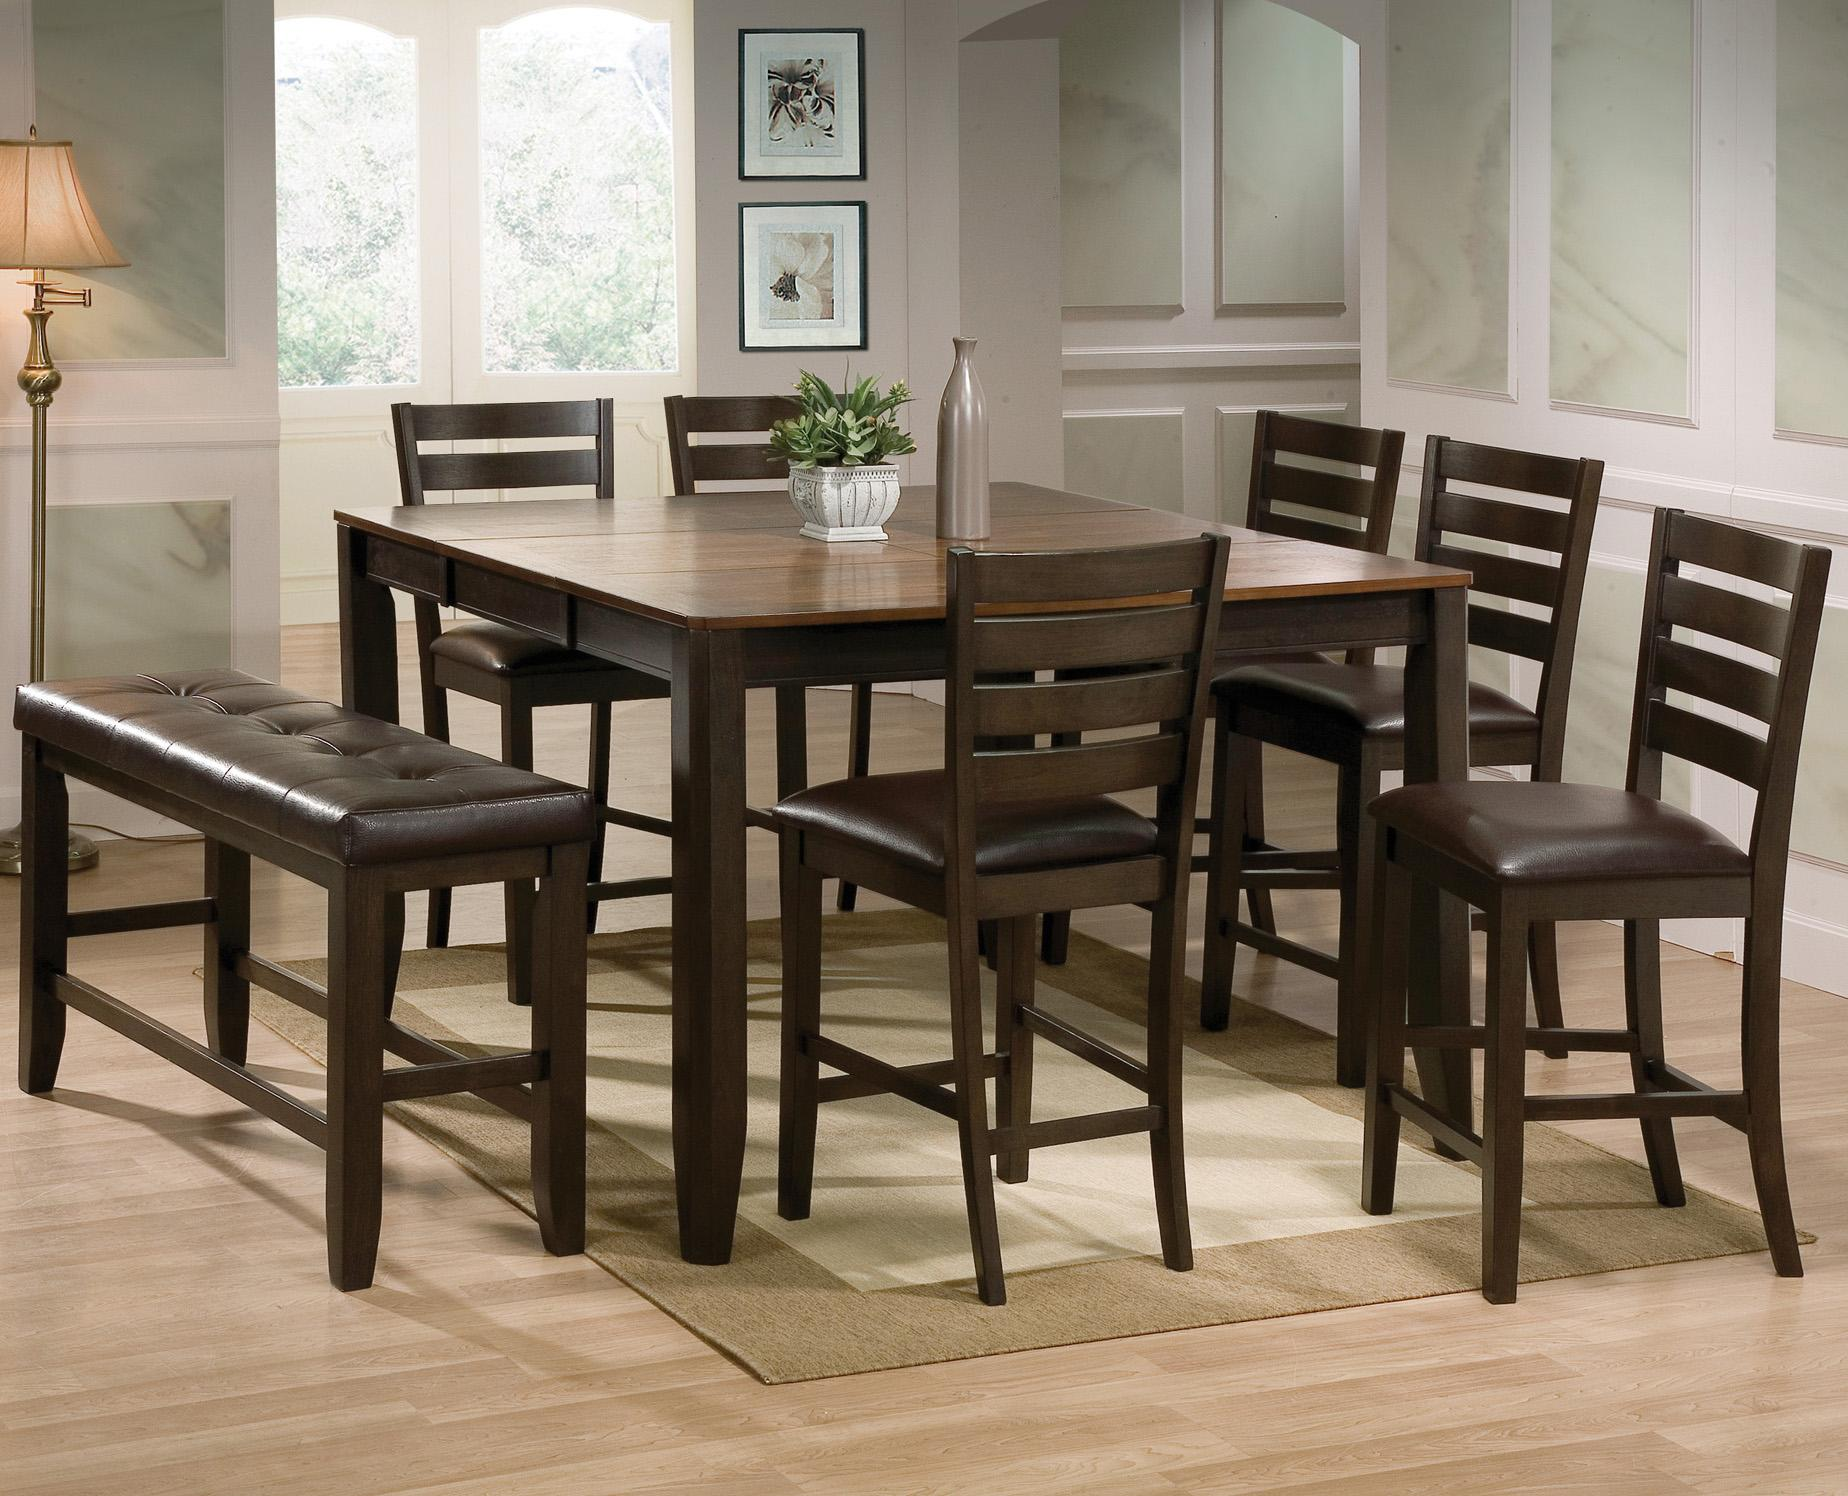 crown mark elliott 8 piece counter height table and chairs with bench set del sol furniture. Black Bedroom Furniture Sets. Home Design Ideas